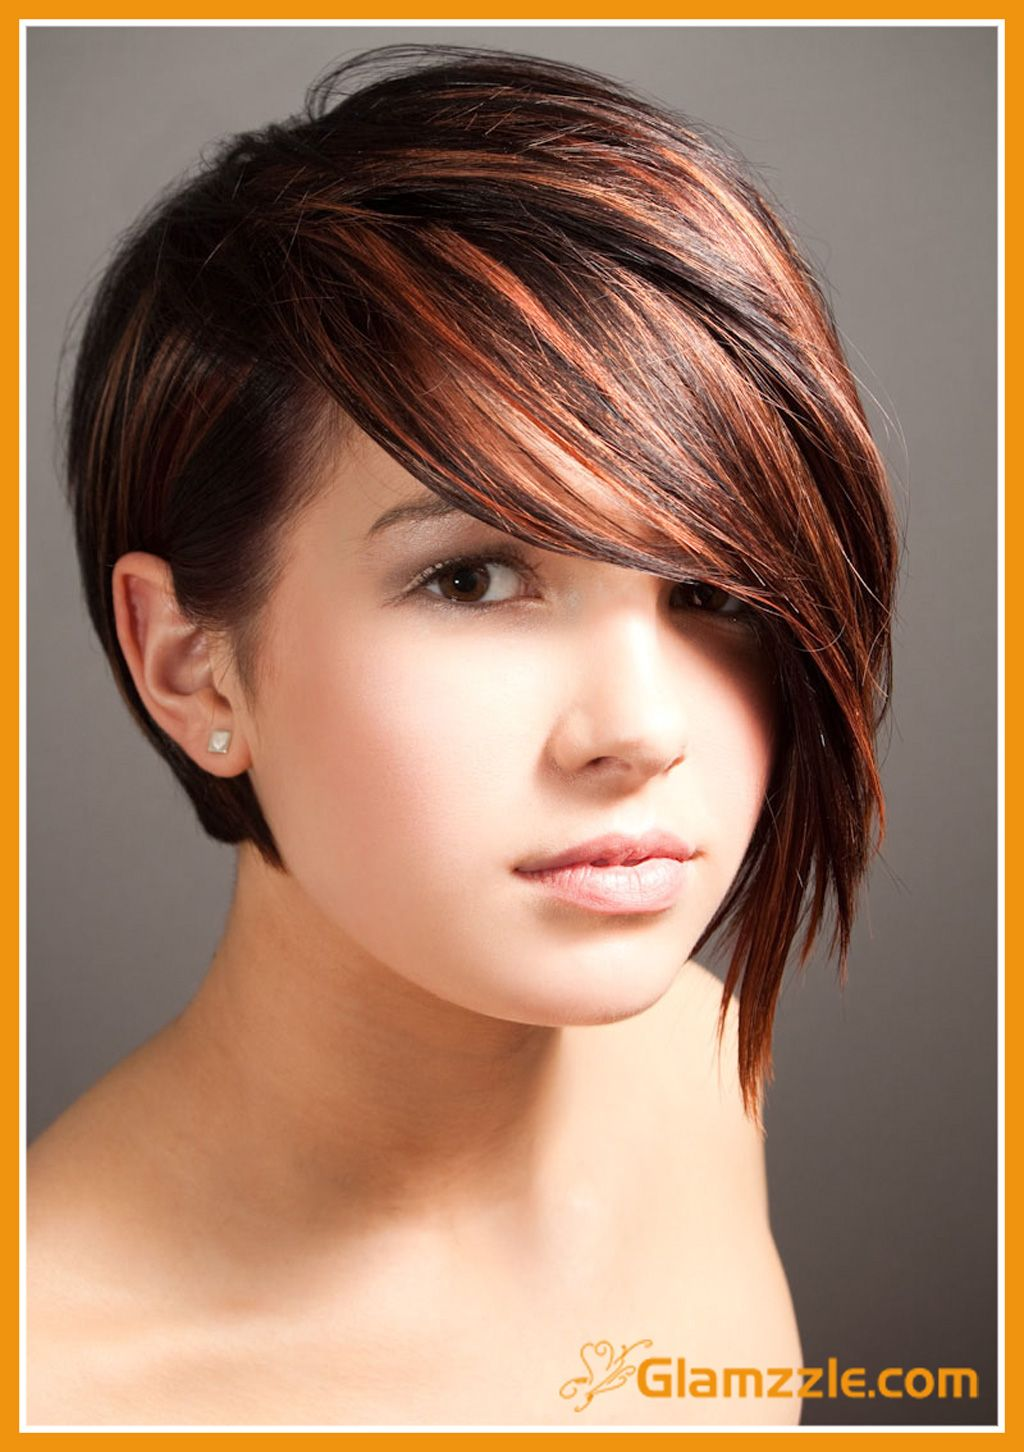 Fantastic 1000 Images About Hair On Pinterest Tin Cans Short Edgy Short Hairstyles Gunalazisus